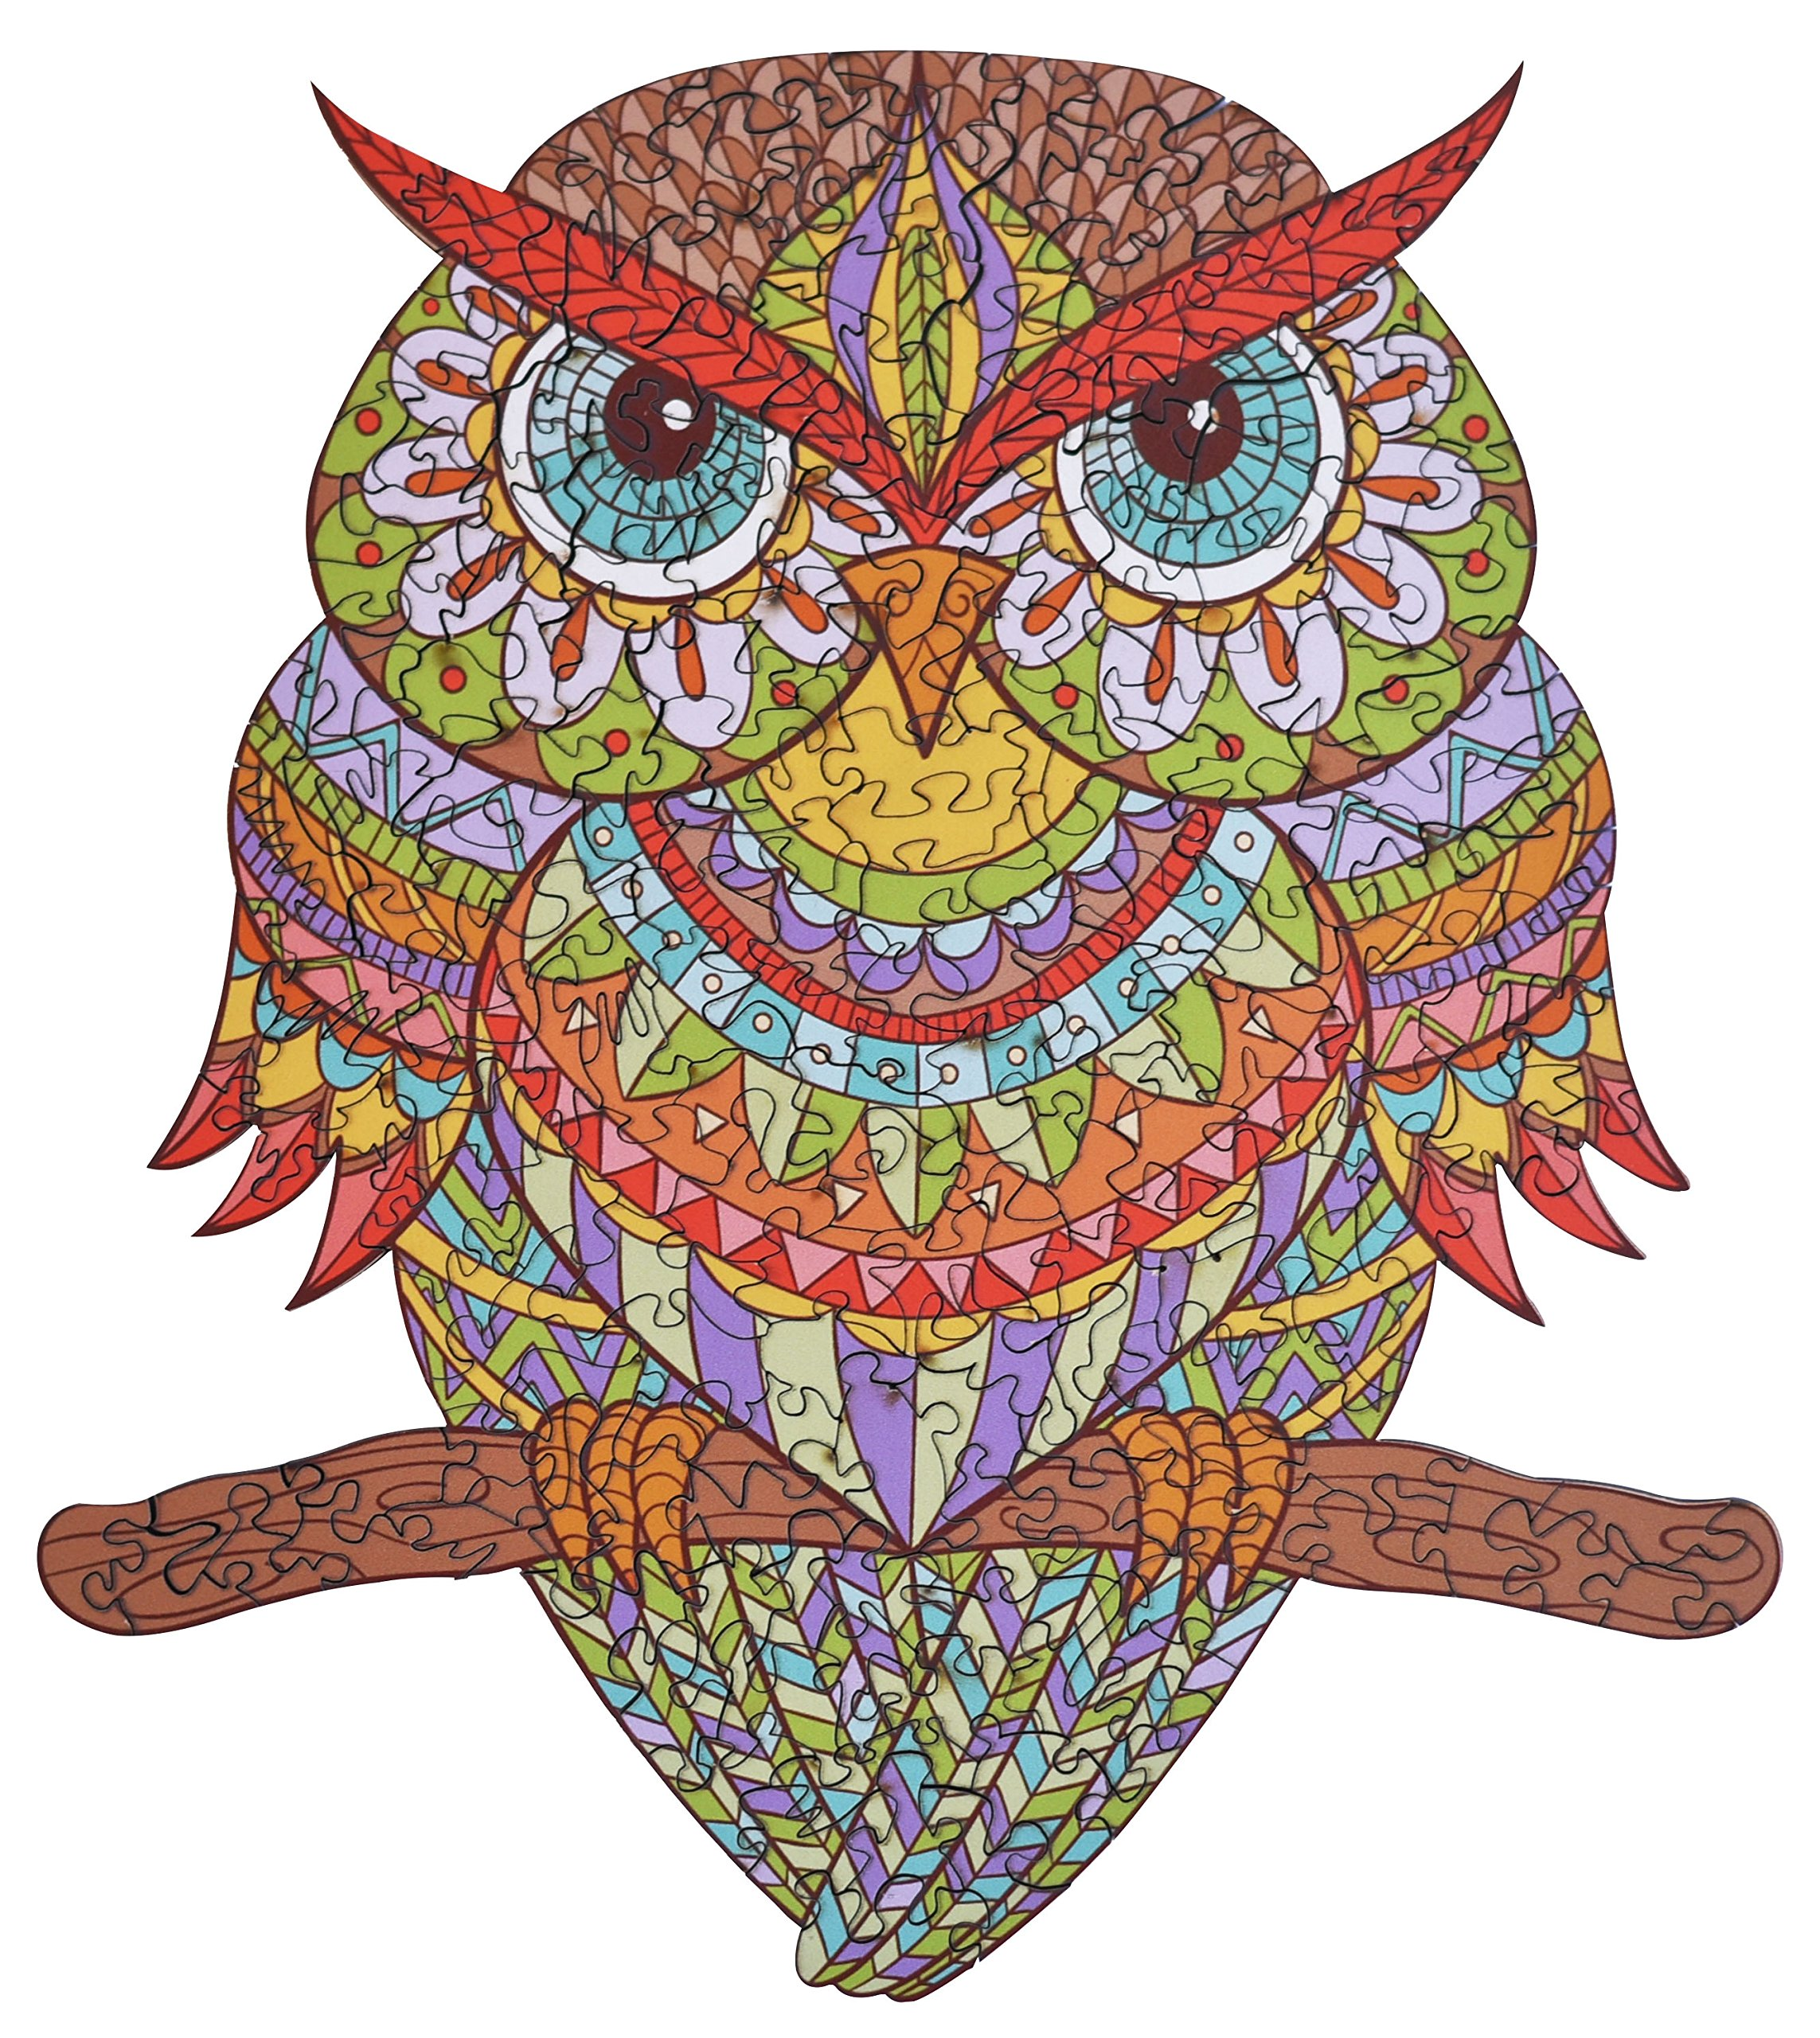 hartmaze Wooden Jigsaw Puzzles - Colorful Owl HM-04 Small Bird Puzzle 206 Unique Shape Jigsaw Pieces-Beautiful Animal for Adults and Kids- Best for Family Game Play Collection. by hartmaze